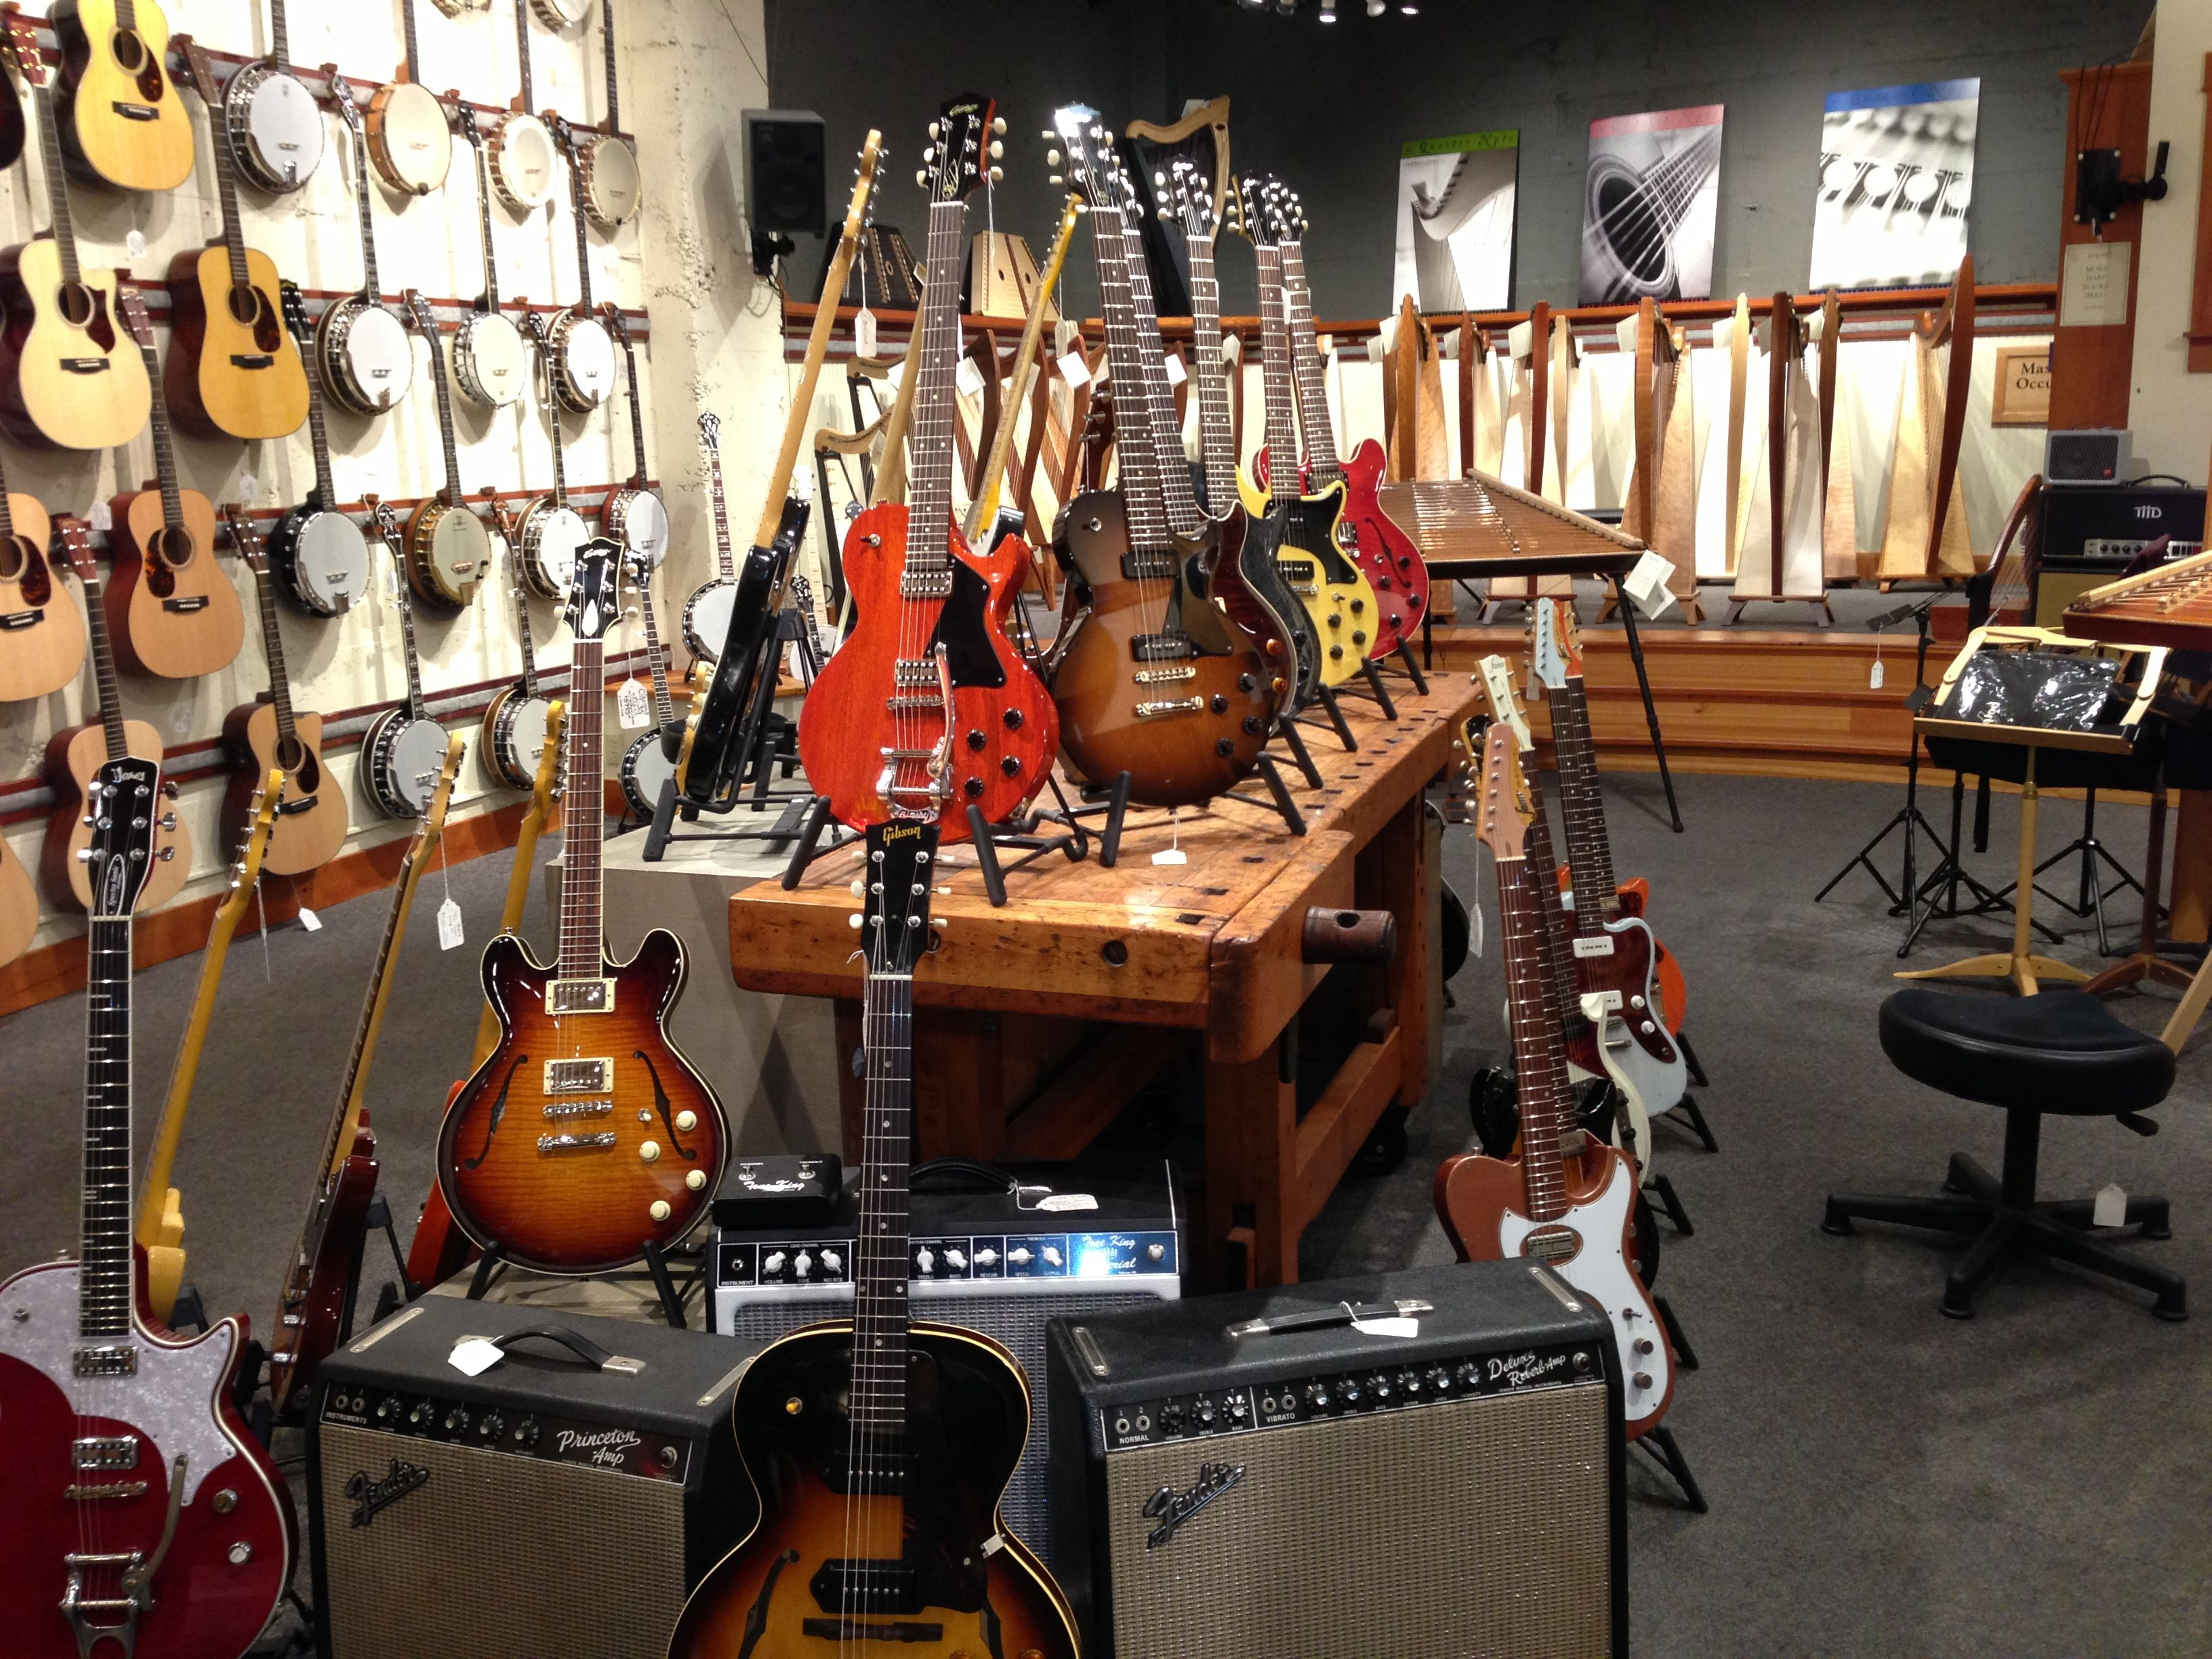 Dusty Stings Acoustic Music Shop S Collection Of Electric Guitars Music Store Interior Store Layout Music Shop